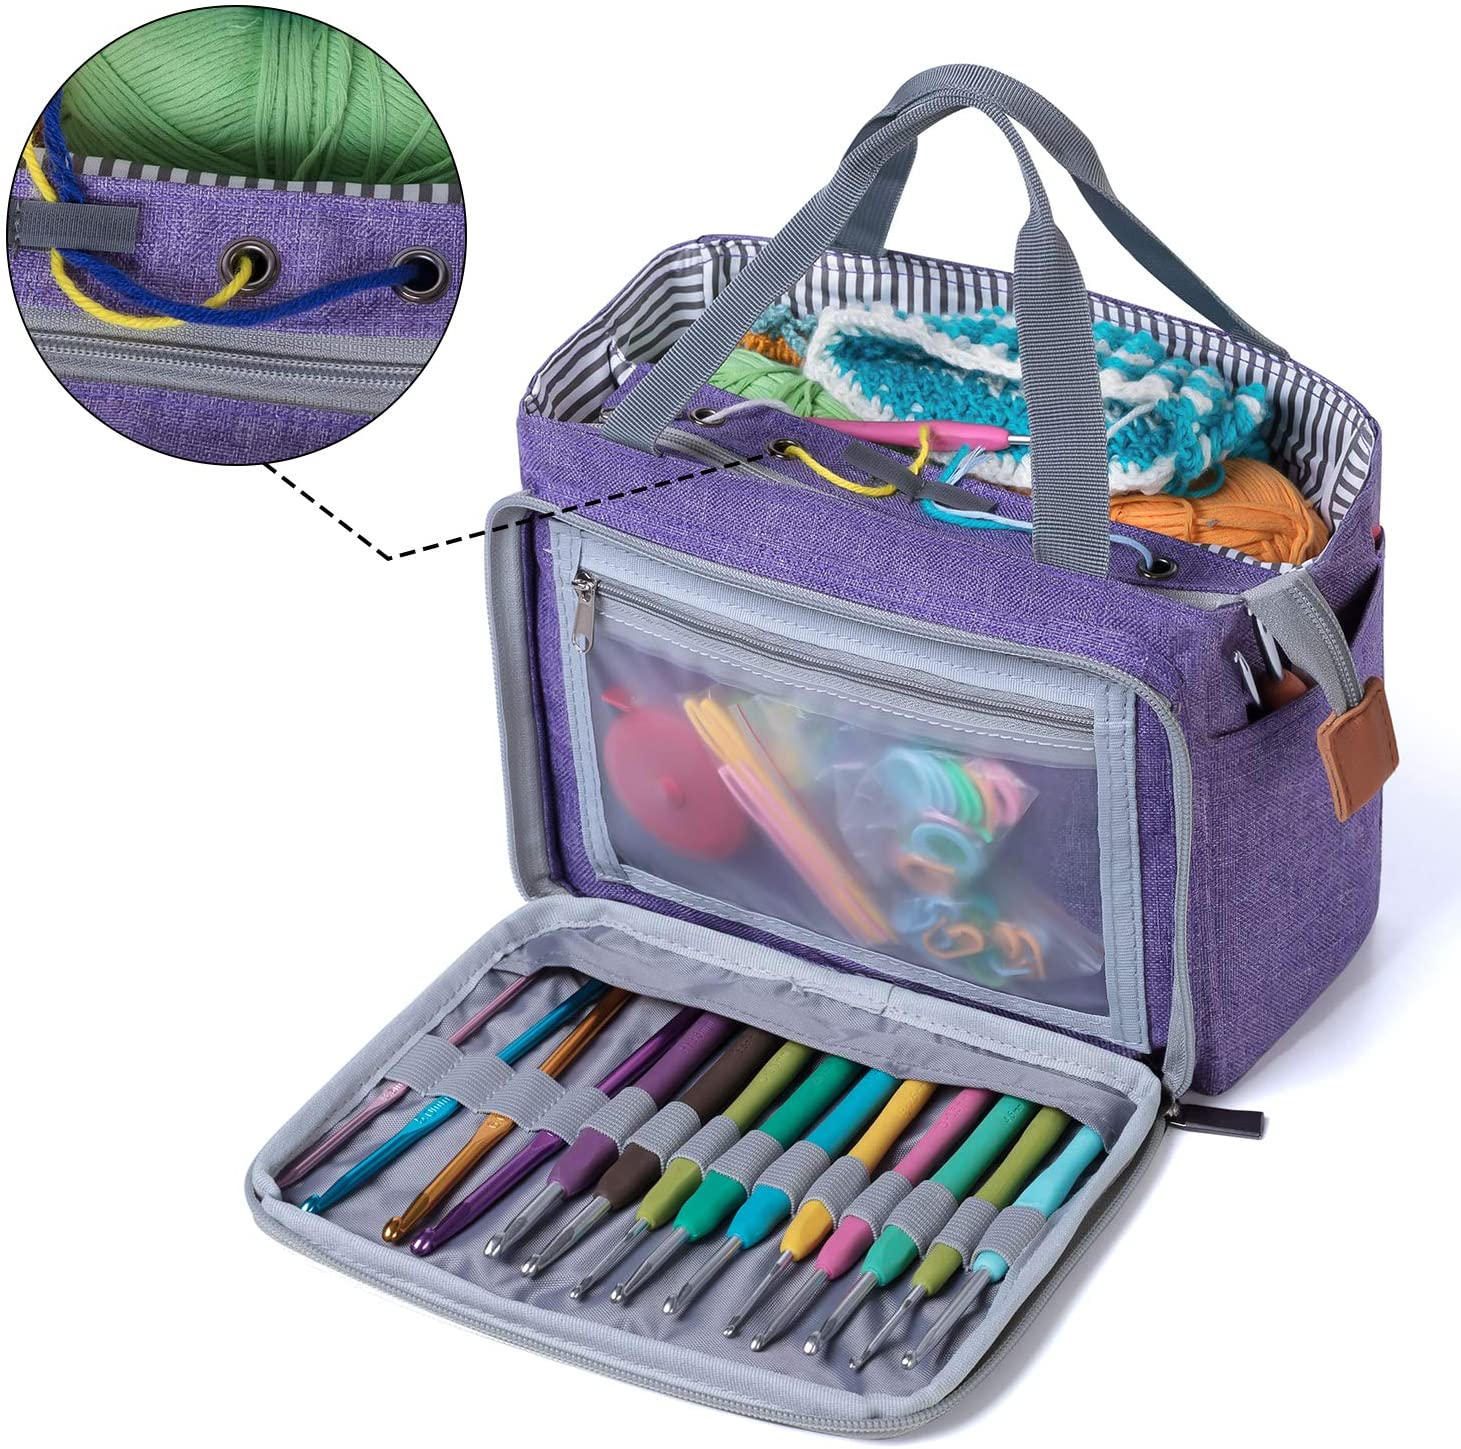 Organizer Bag per Uncinetto